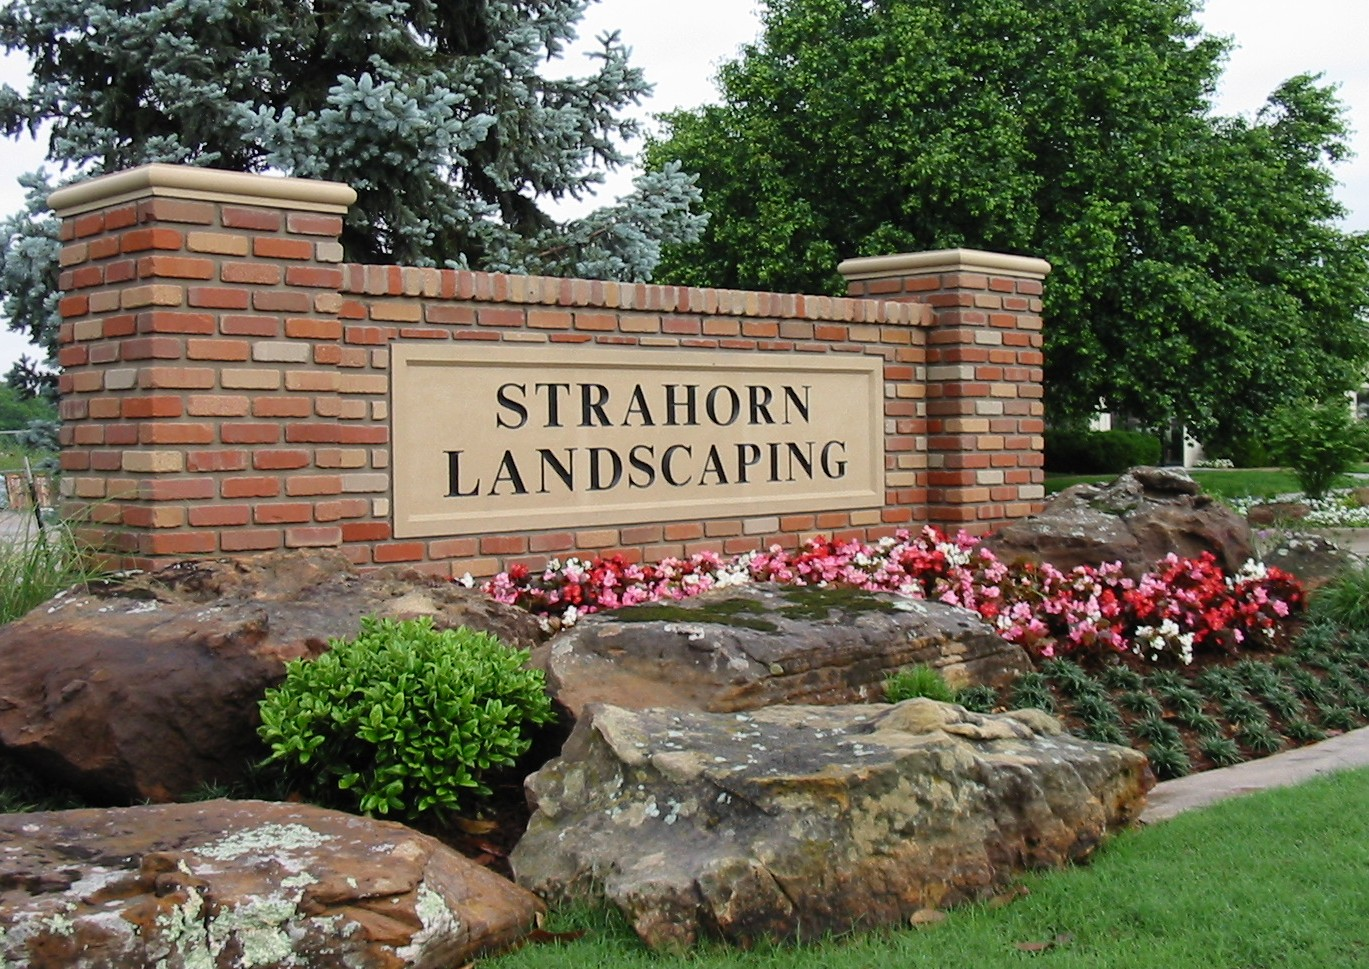 Strahorn Landscaping